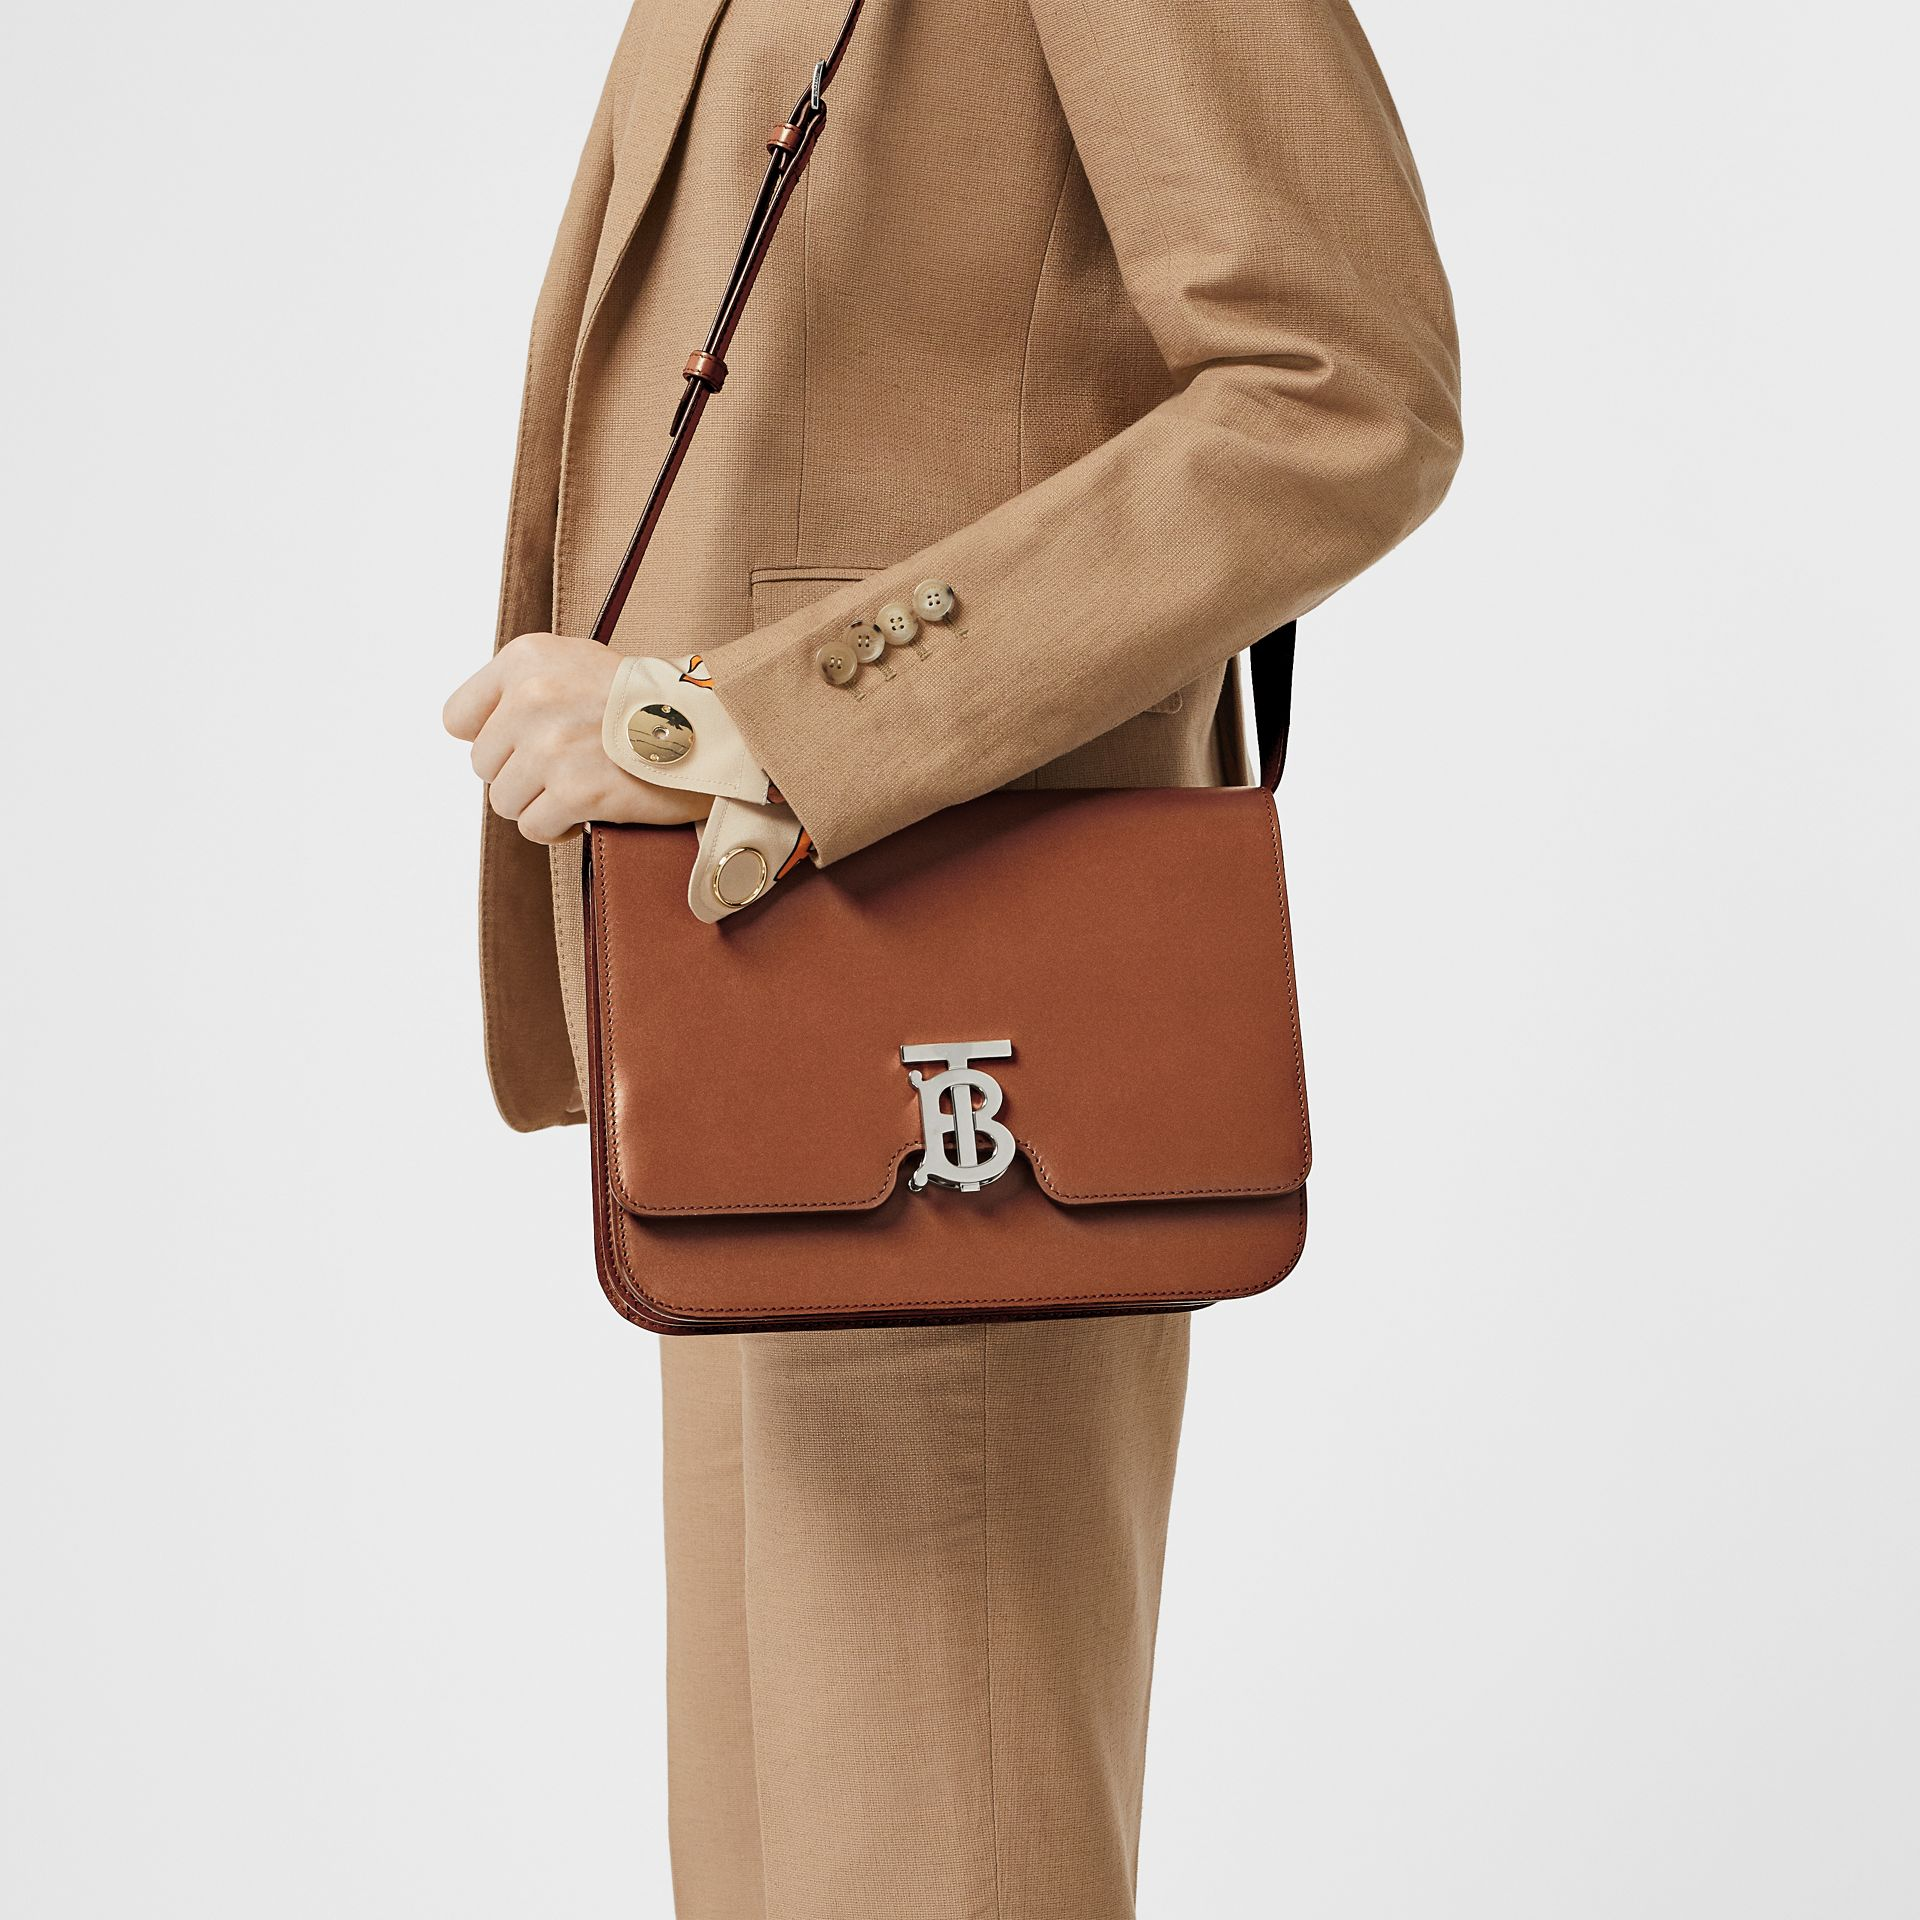 Medium Leather TB Bag in Malt Brown - Women | Burberry Australia - gallery image 2